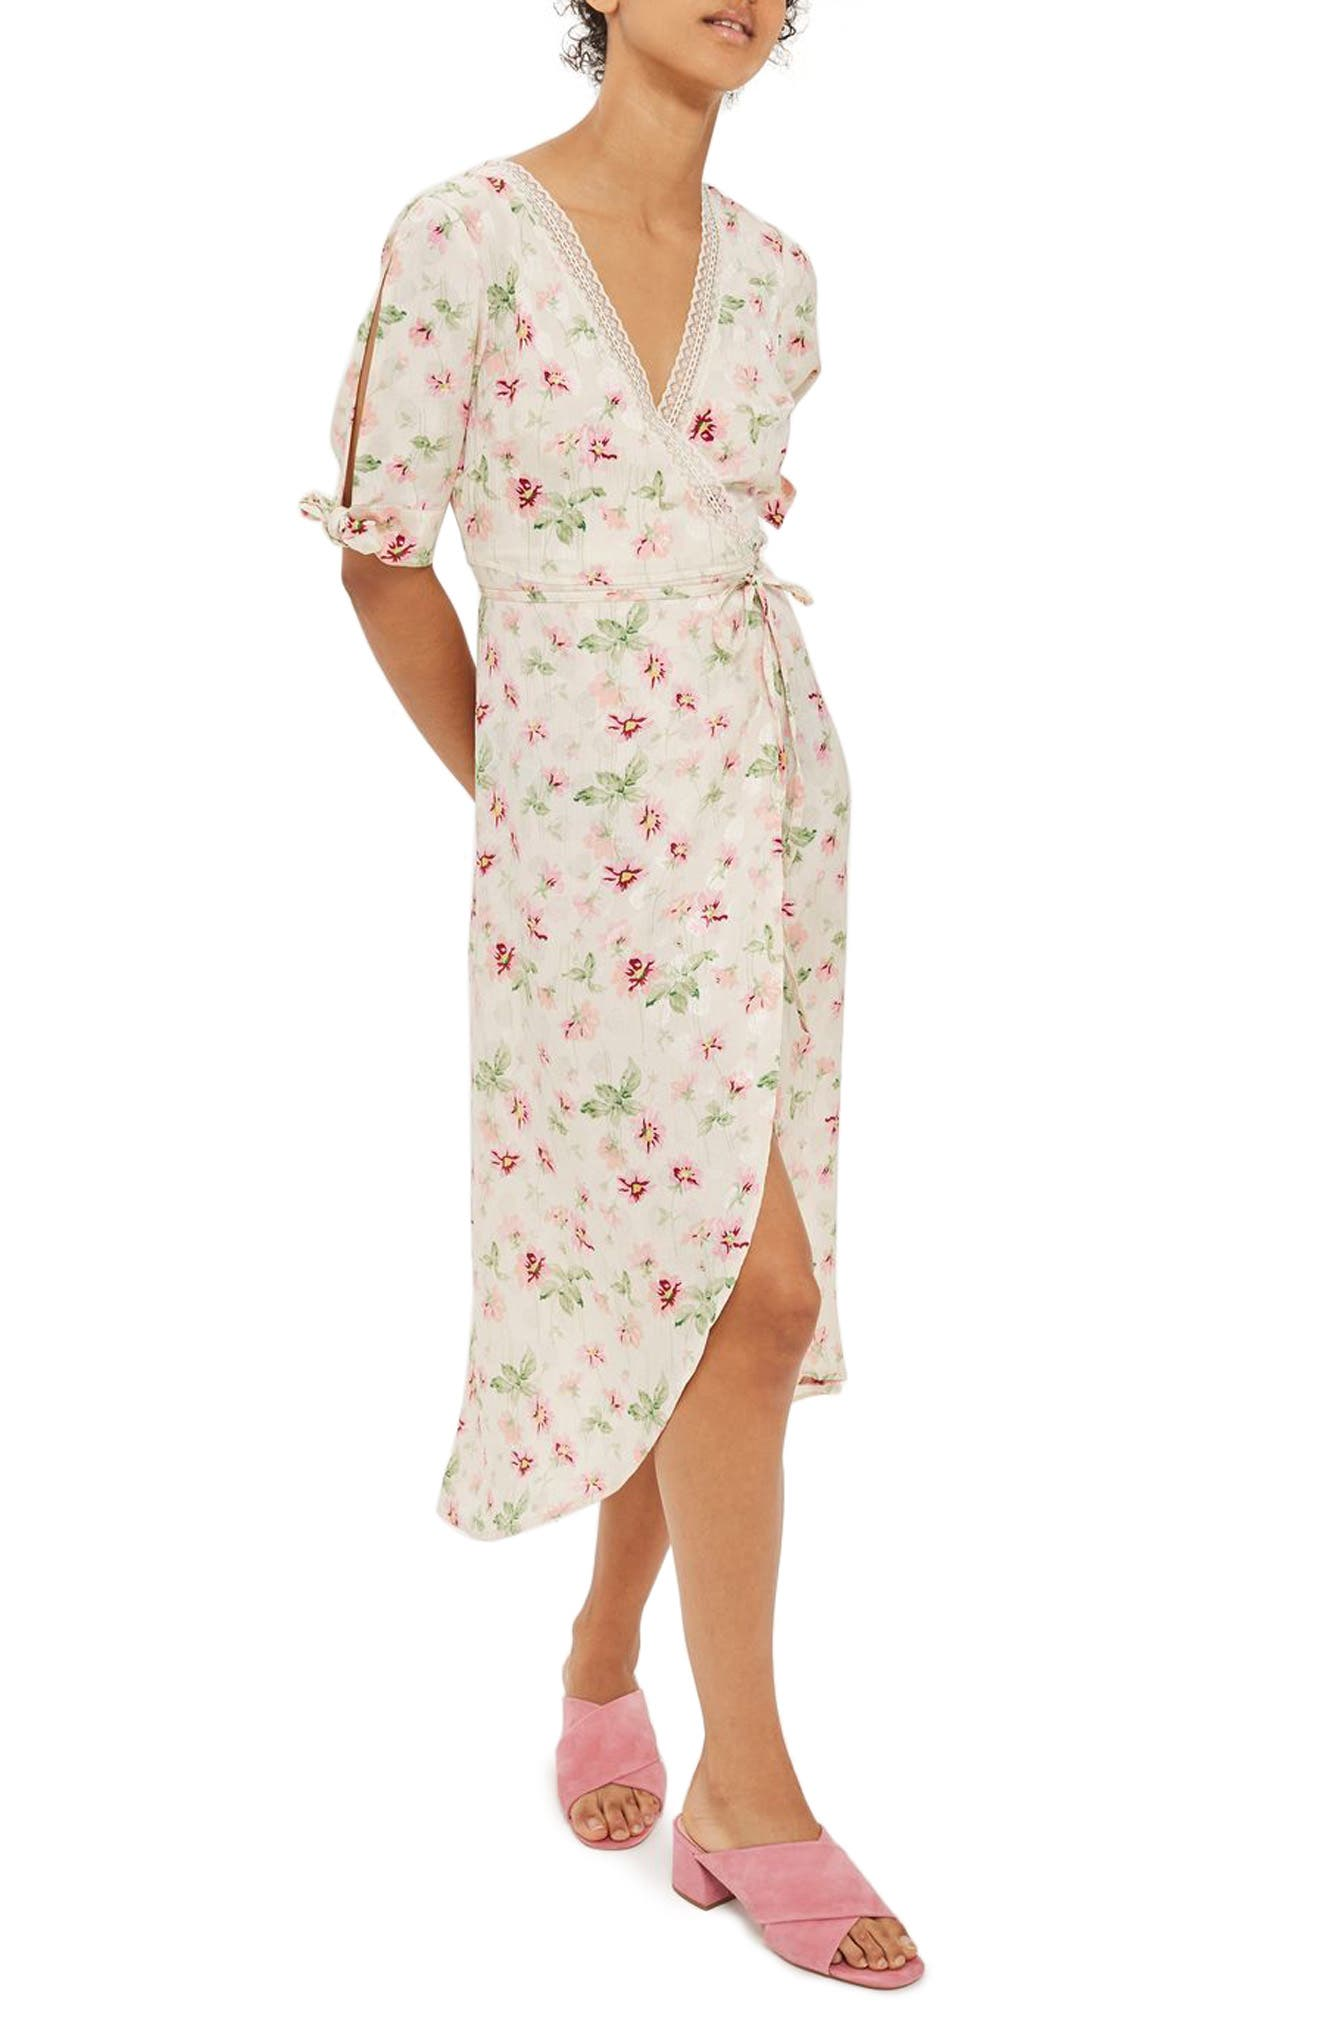 Topshop Floral Wrap Midi Dress